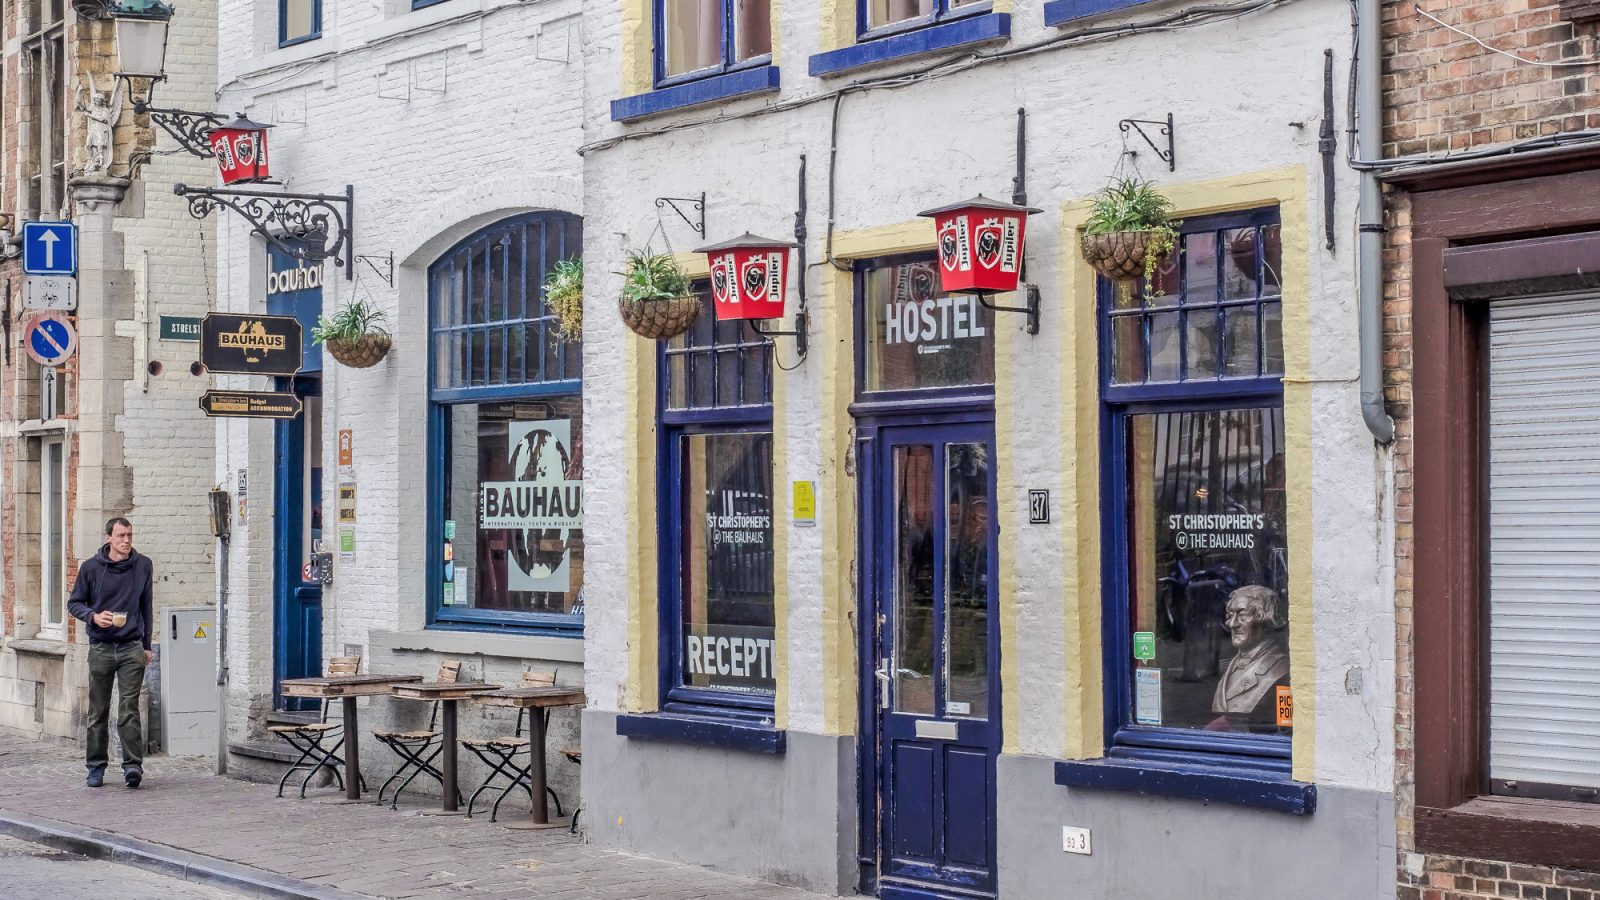 Review of St. Christopher's Inn hostel at the Bauhaus in Bruges, Belgium